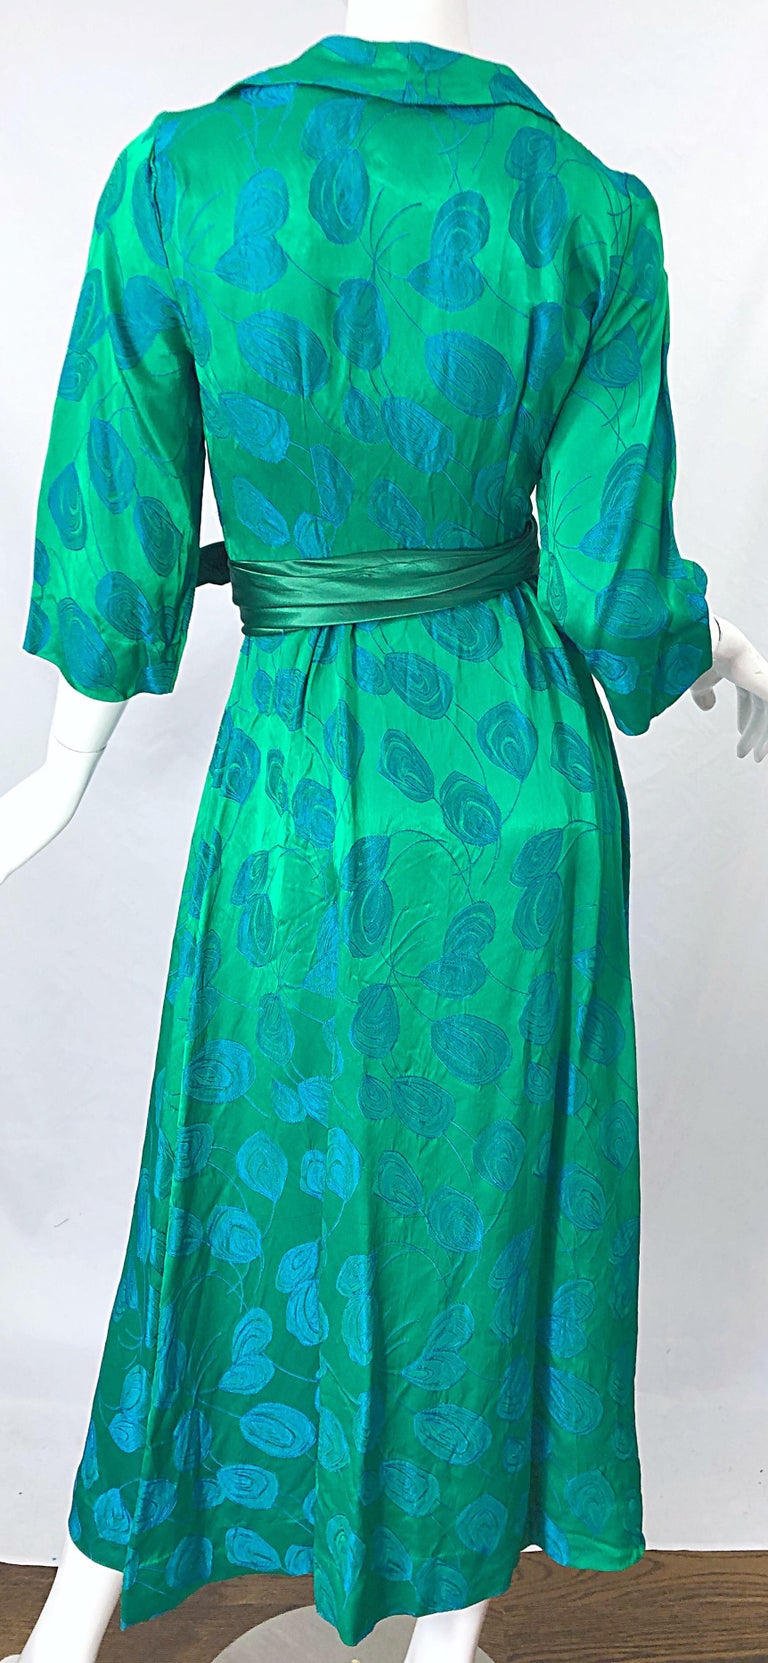 1950s Kelly Green + Blue Flower Print Rayon Rhinestone Vintage 50s Wrap Dress For Sale 3